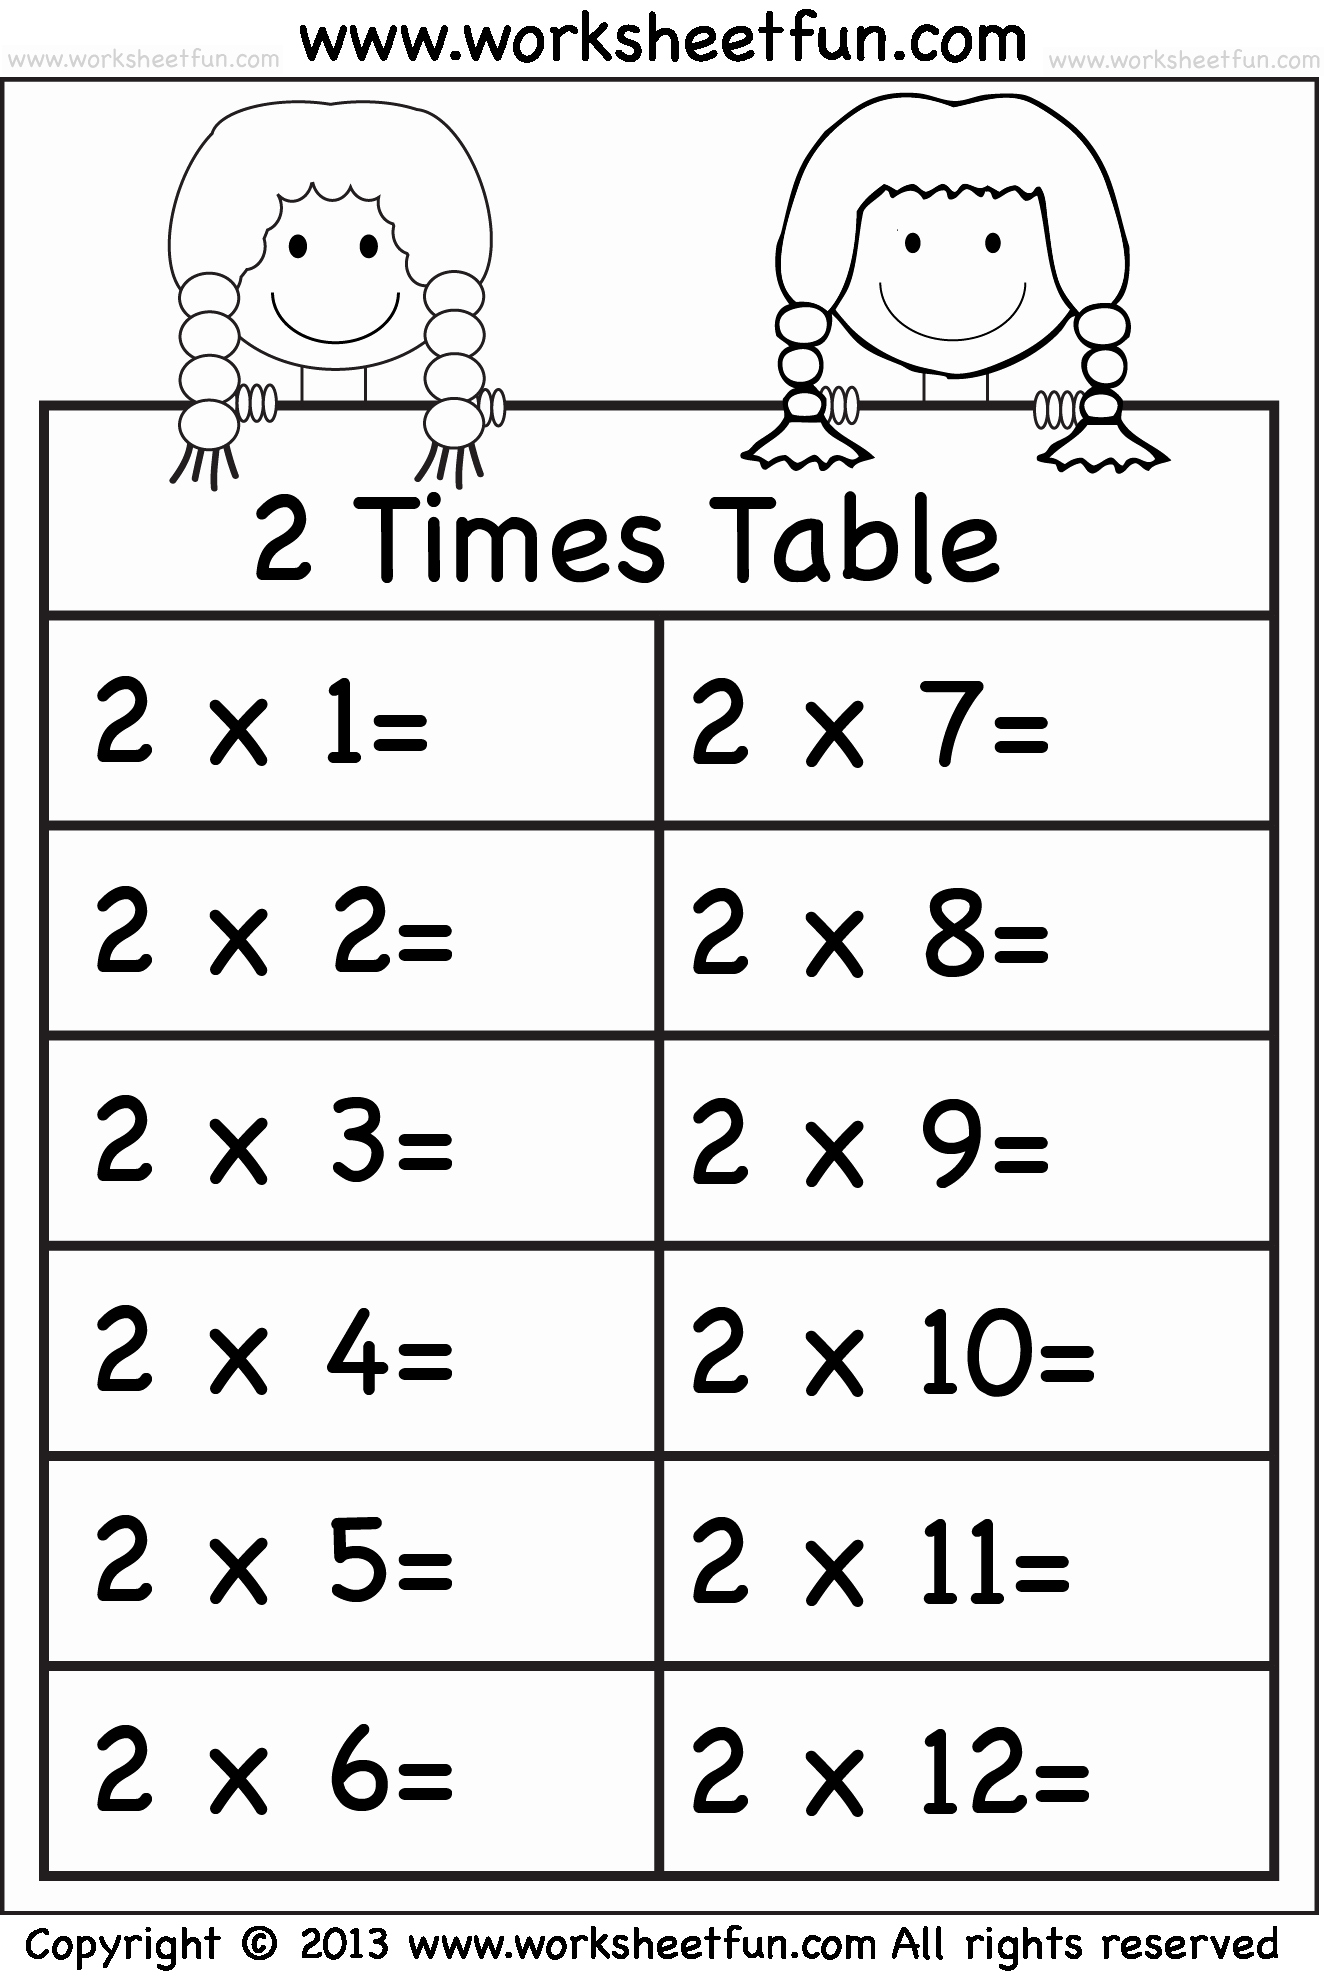 2 Times Table Worksheet Inspirational Times Tables Worksheets – 2 3 4 5 6 7 8 9 10 11